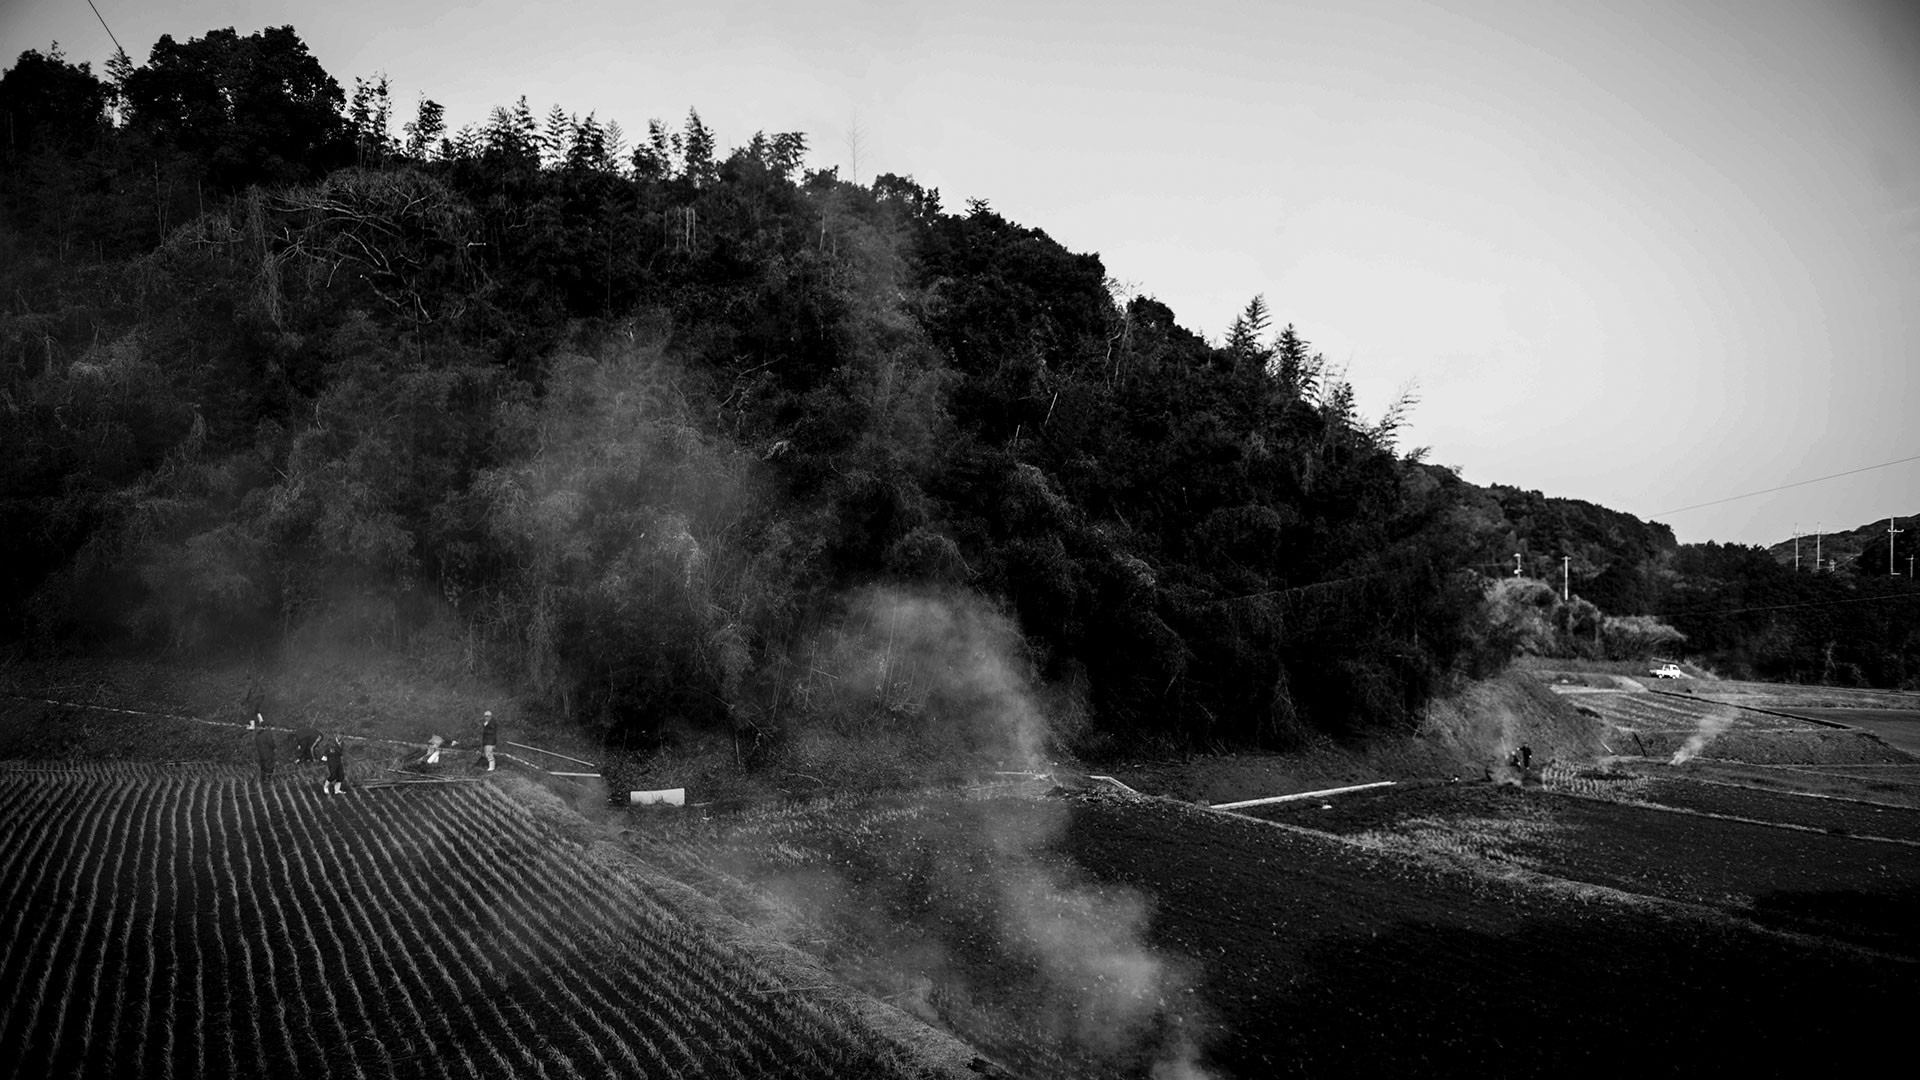 The process of brewing sake begins with brown rice, which is harvested in the autumn